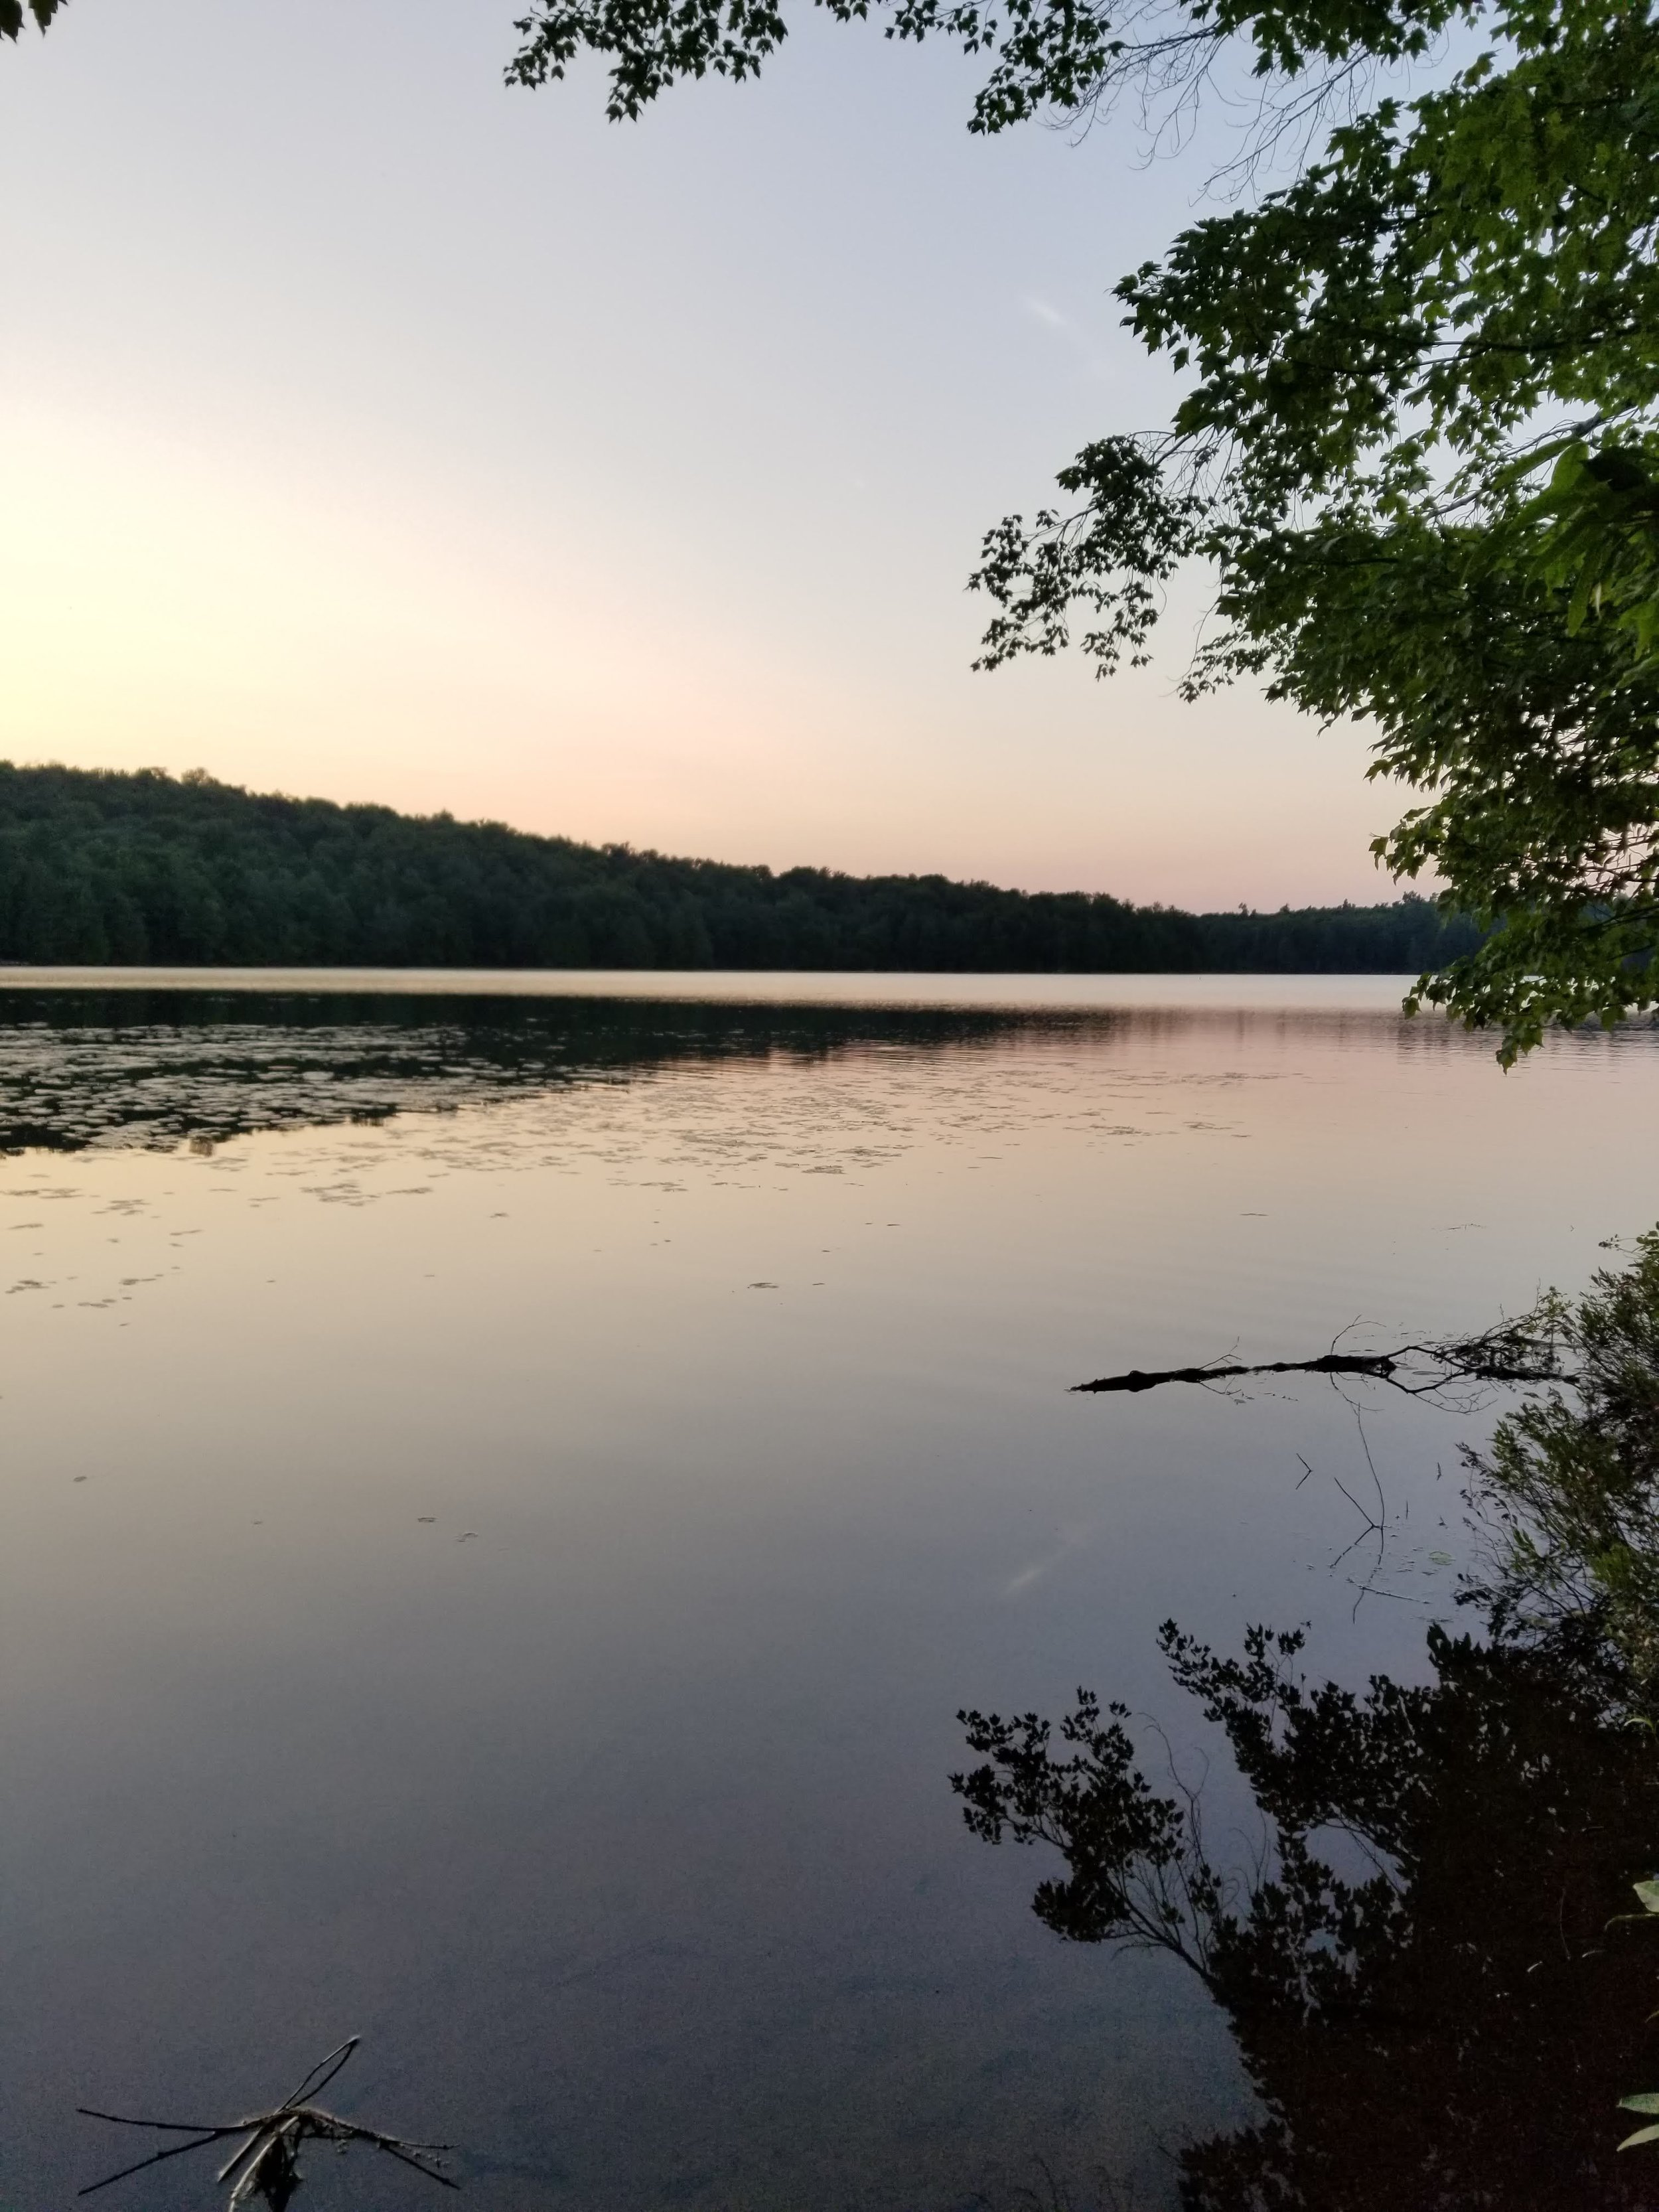 Deadcreek Flow, near Wanakena, NY at sunset. Sights like these are often the focus of my day dreams.